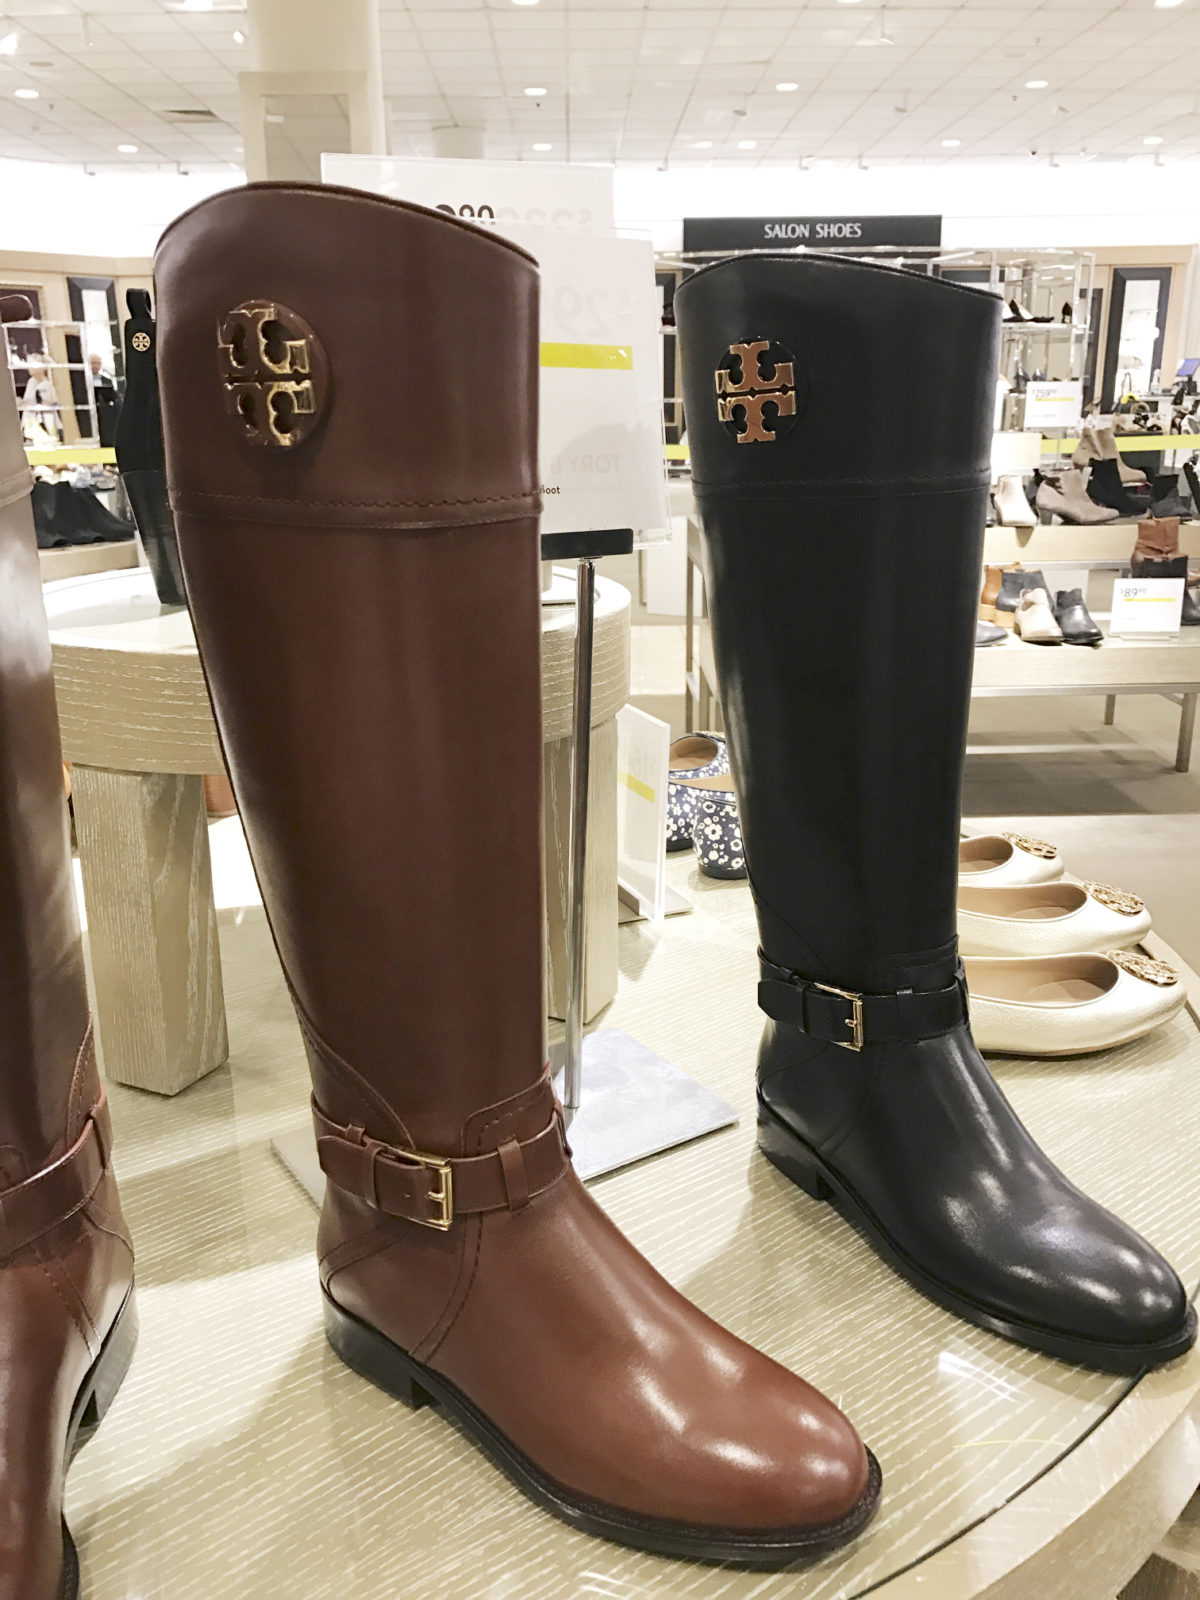 Tory Burch Riding Boot Nordstrom Anniversary Sale 2017